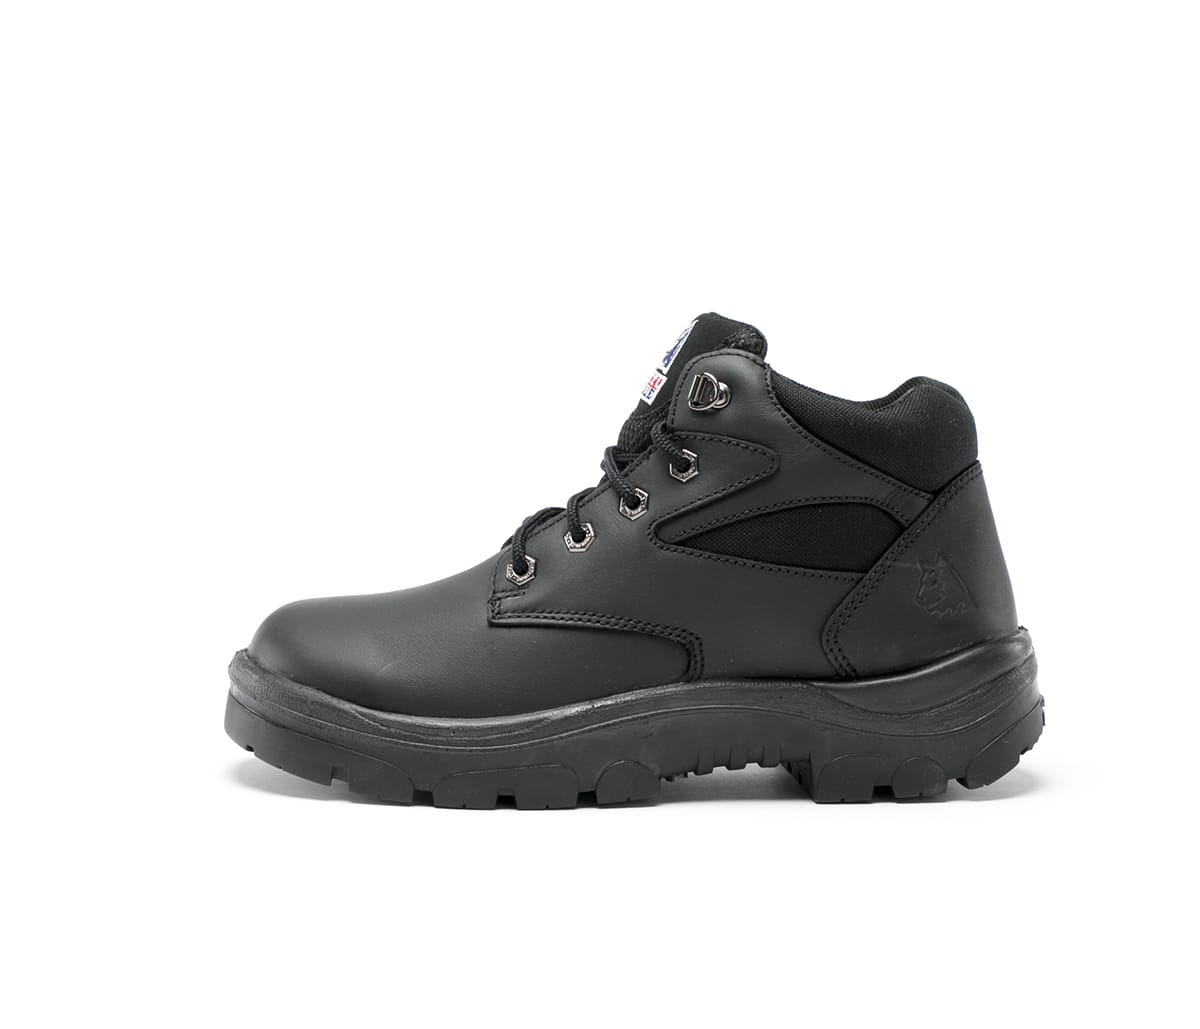 Whyalla TPU/Non Safety - Black